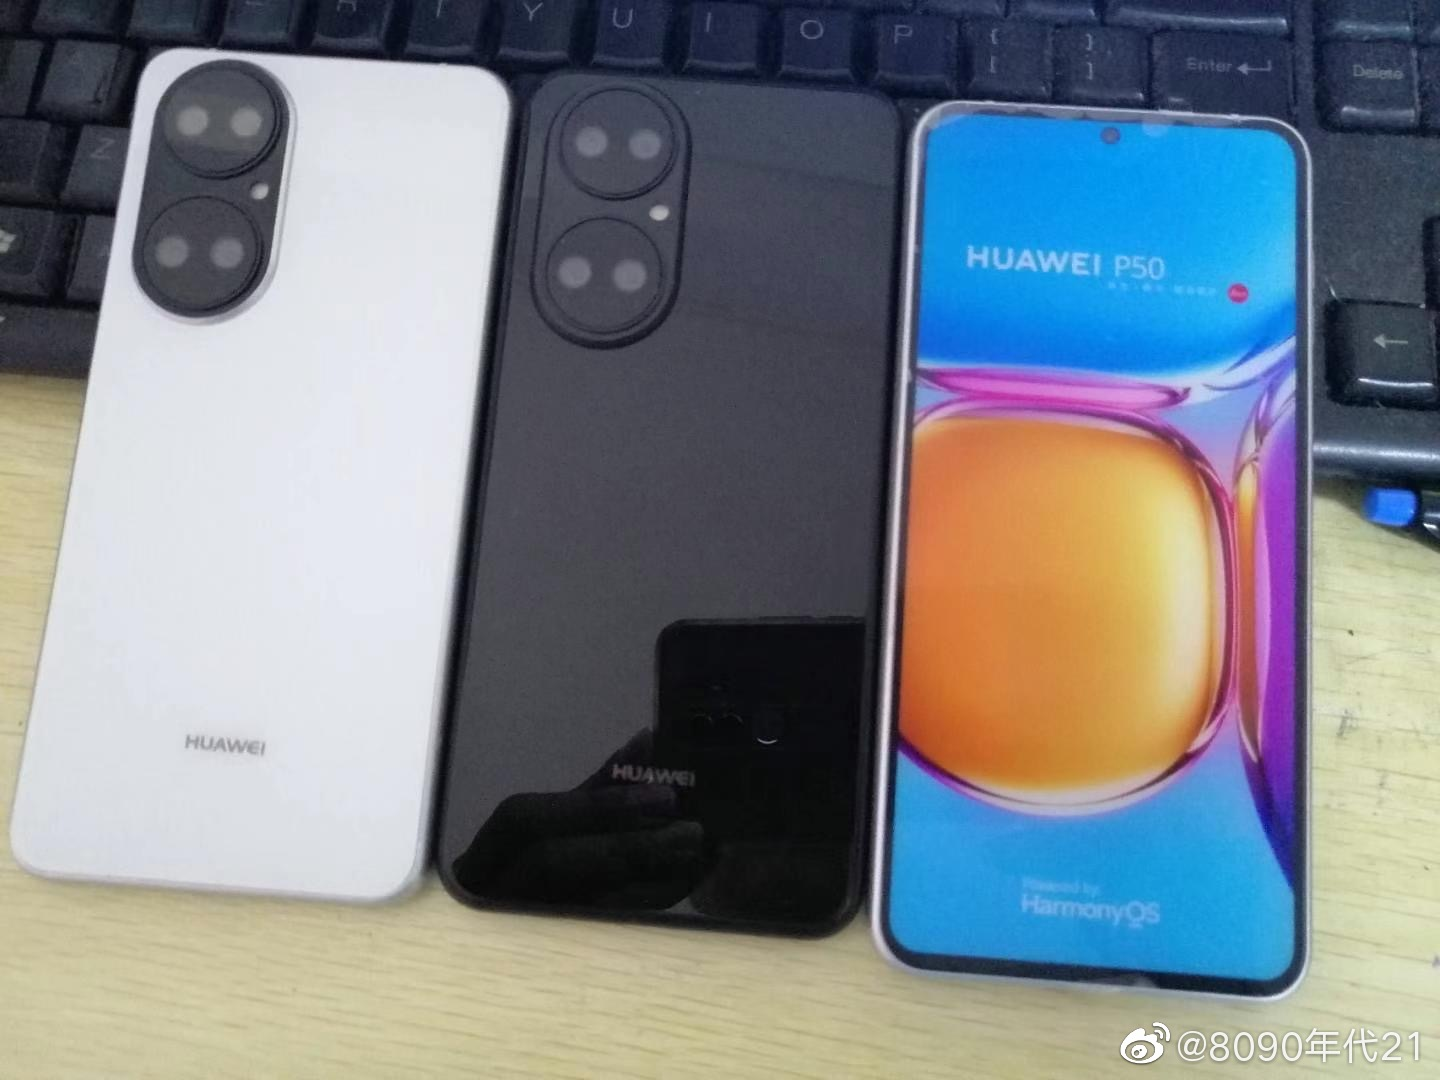 Huawei P50 dummy units appear with unusual camera design and HarmonyOS marketing